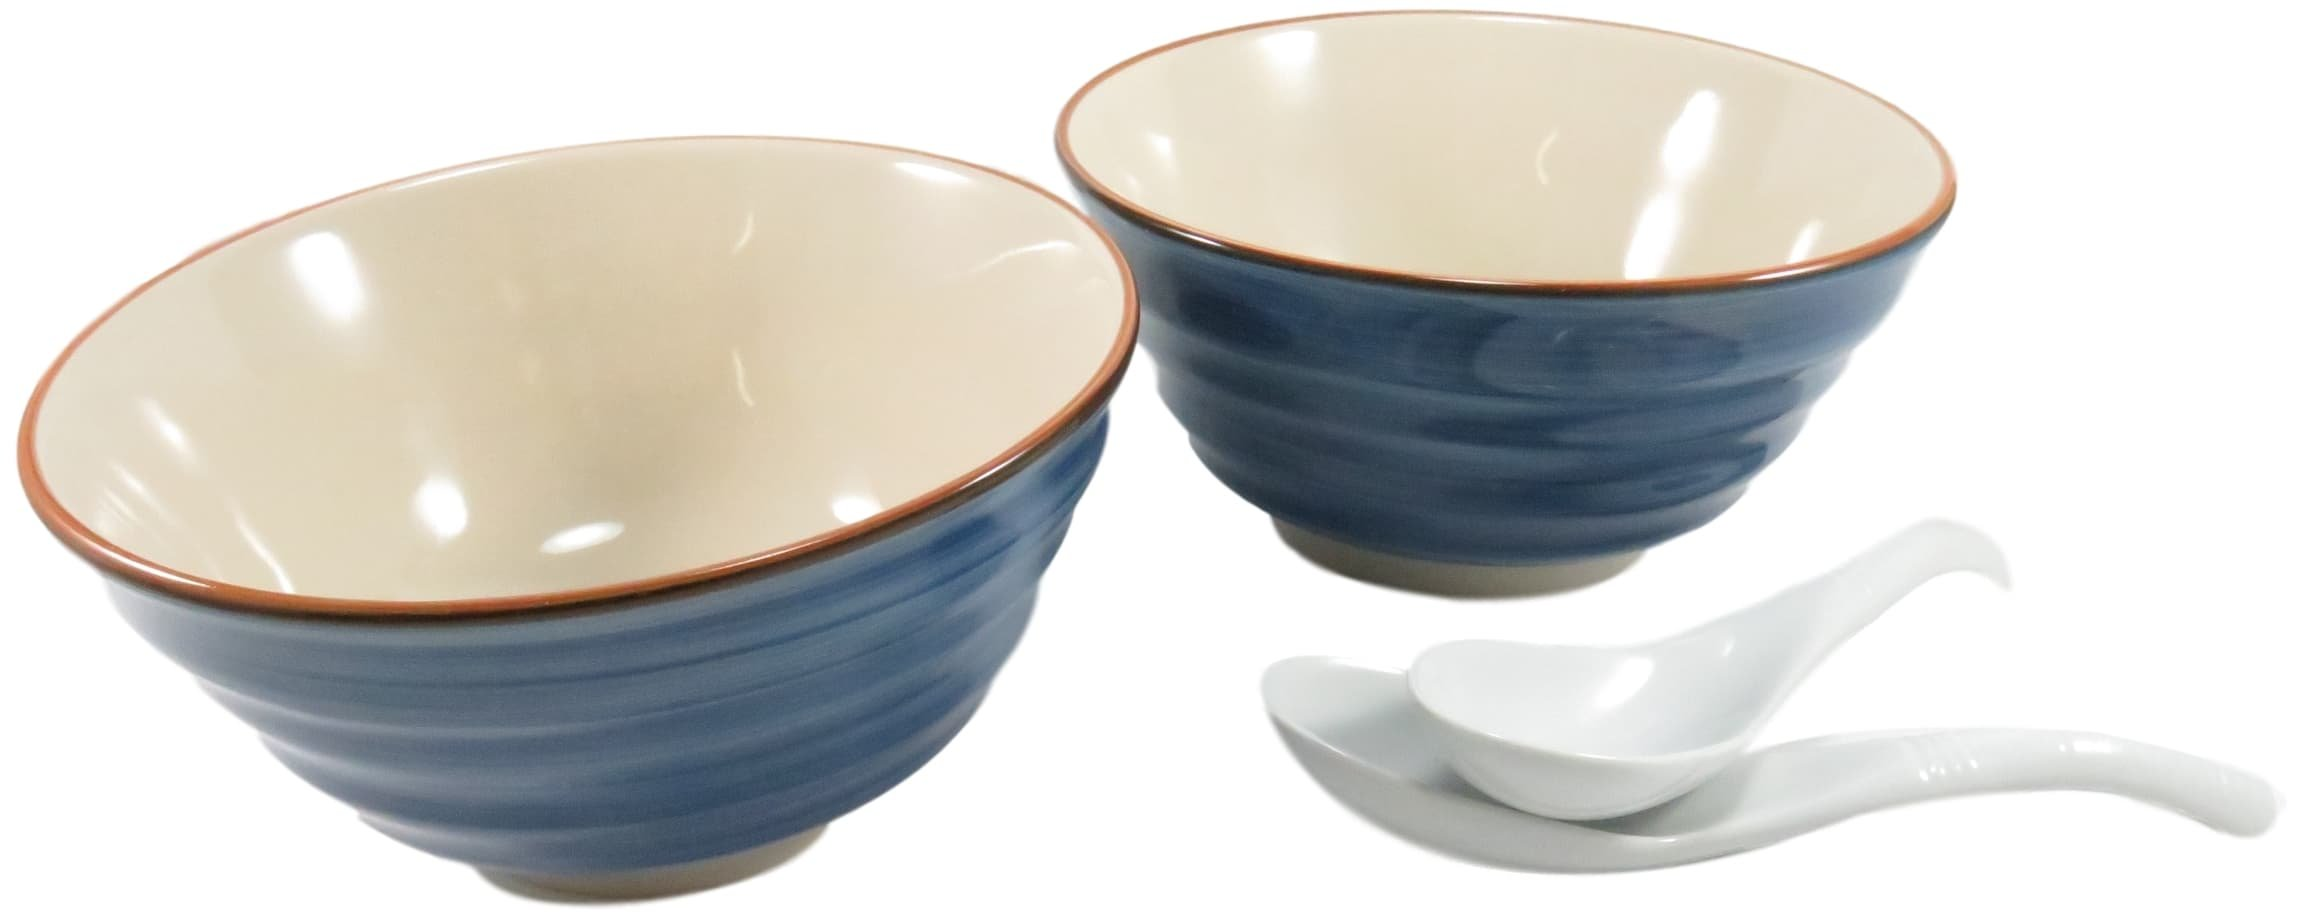 Ceramic Bowl Ramen Noodle Udon Donburi Rice 24 fl oz Ocean Blue with (2) Porcelain Spoons White (4 Piece Set)